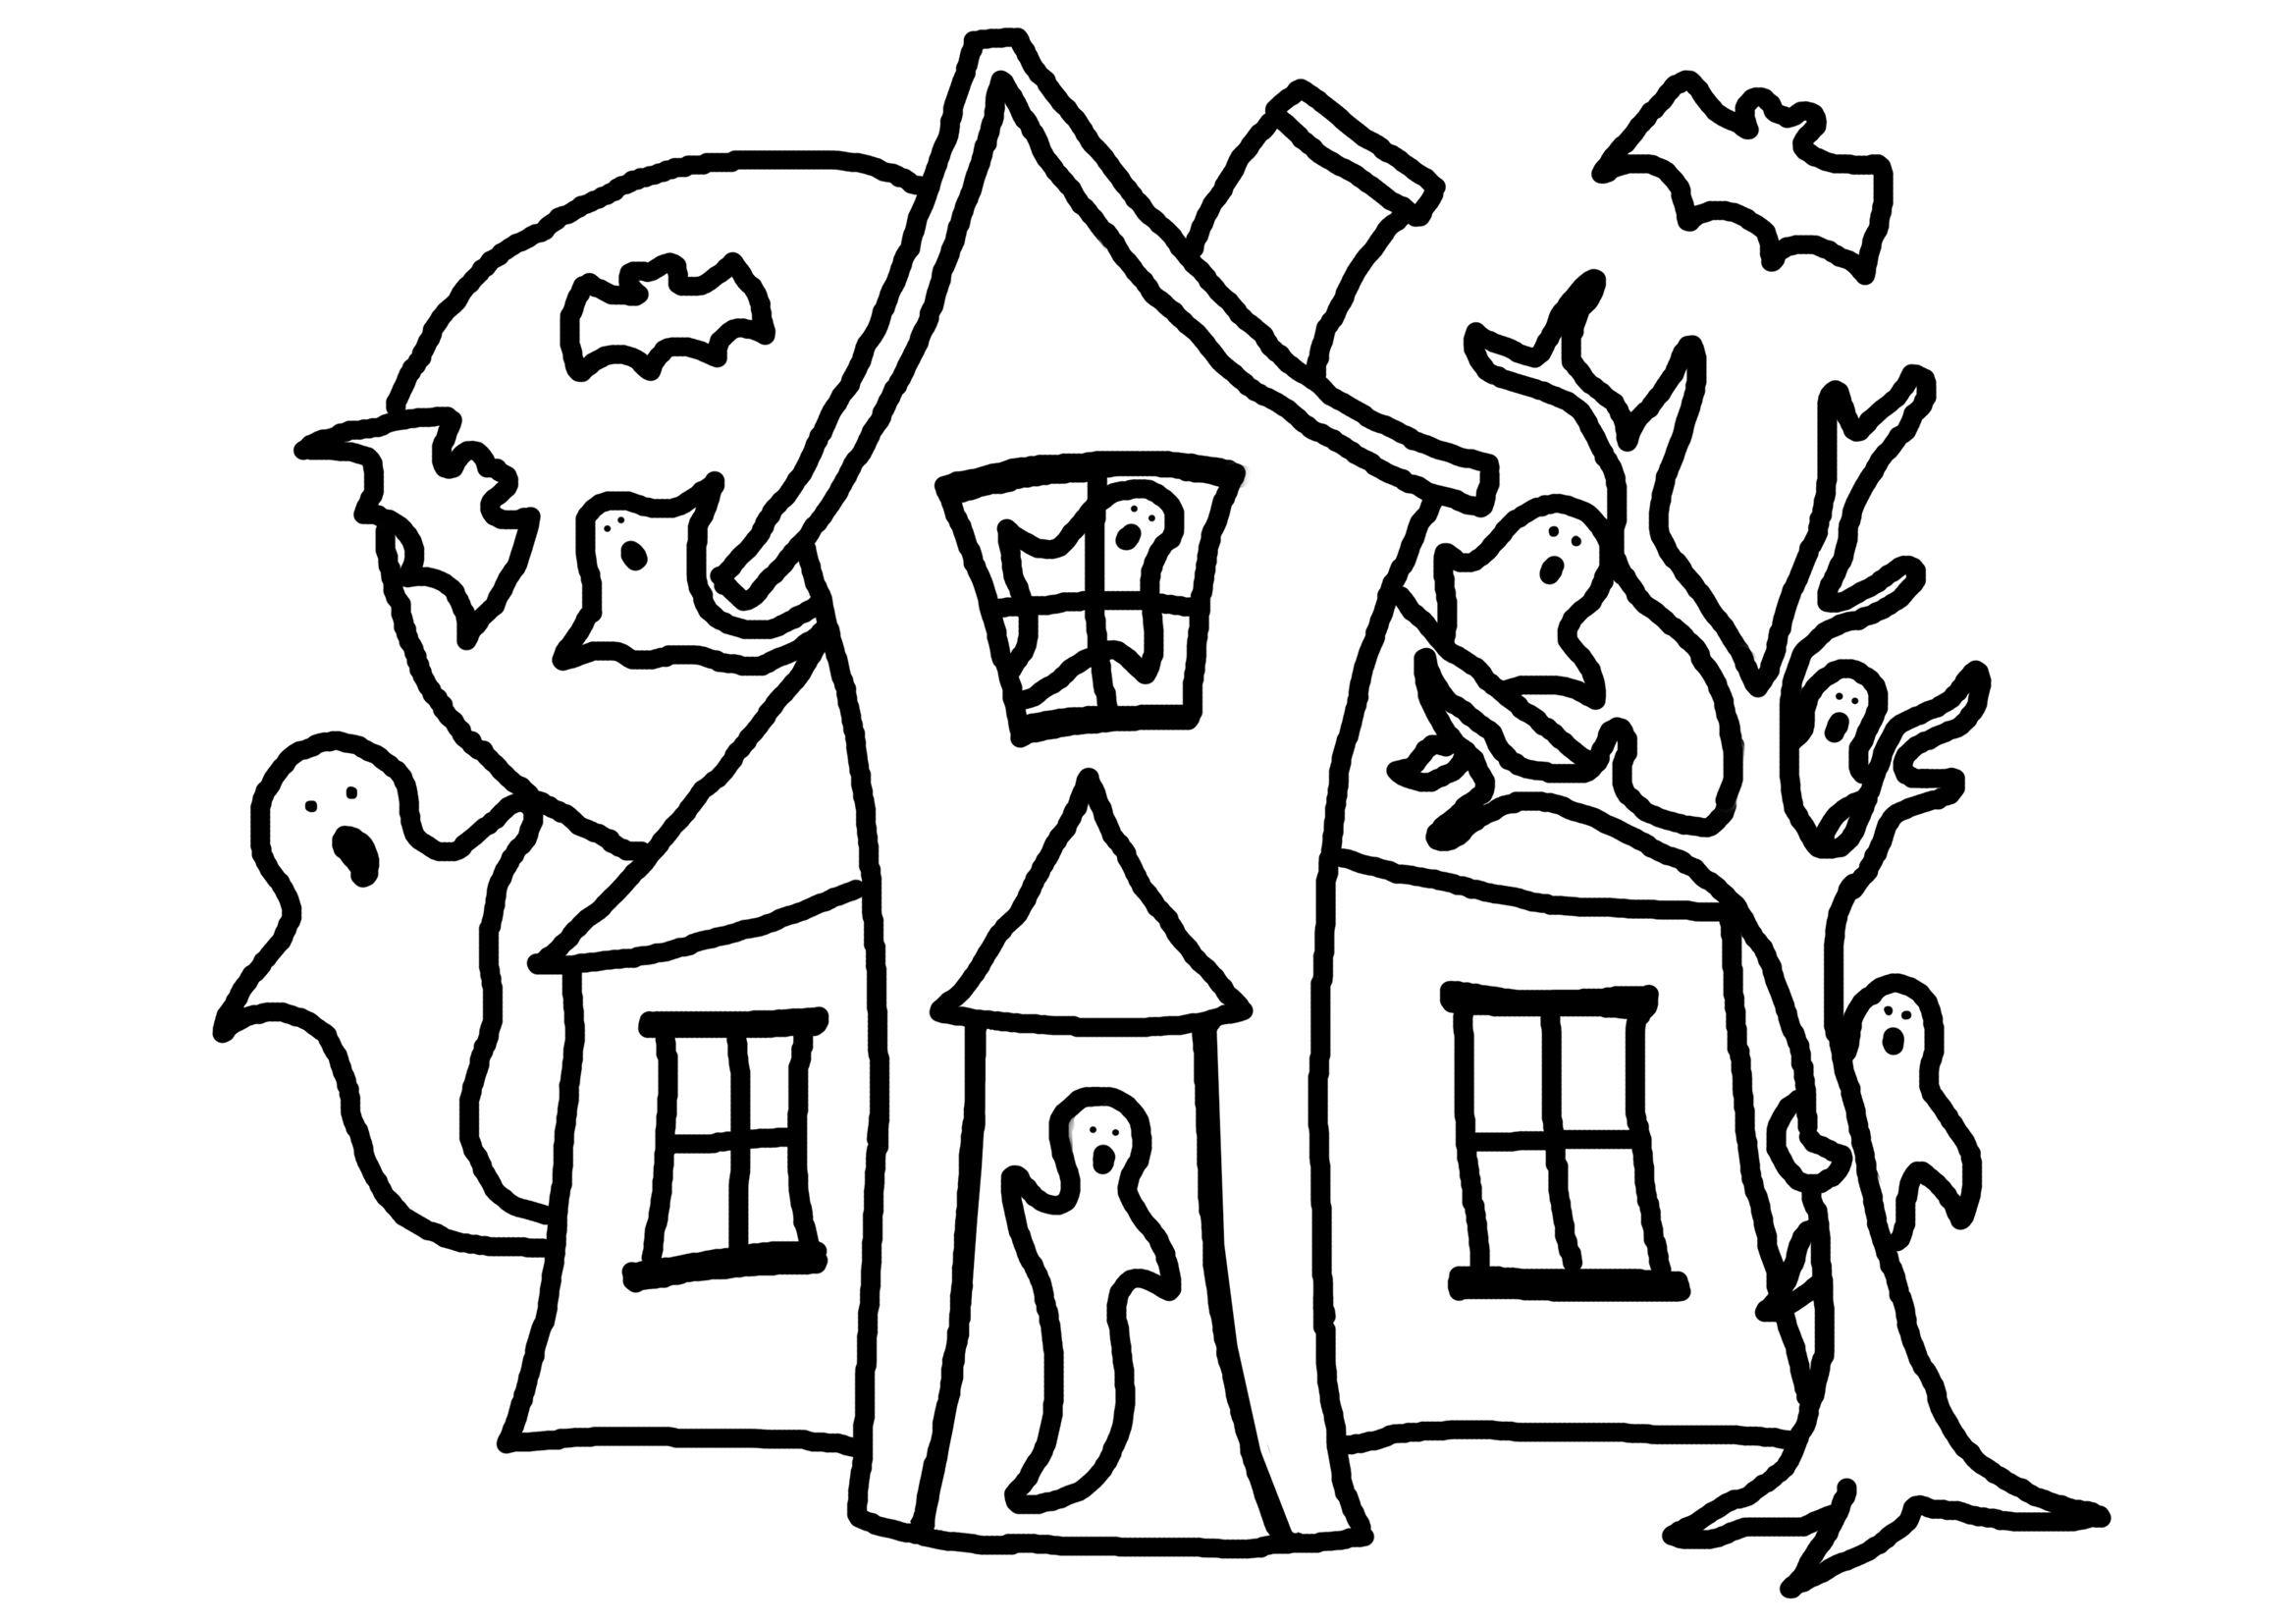 haunted house printable coloring pages printable haunted house coloring pages printable pages haunted coloring house